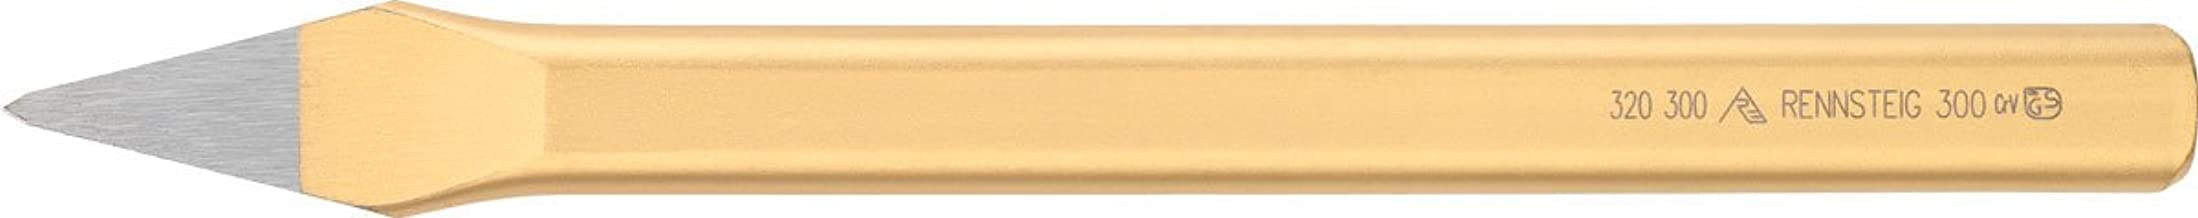 Rennsteig Cross Chisel Polished 150A Mm